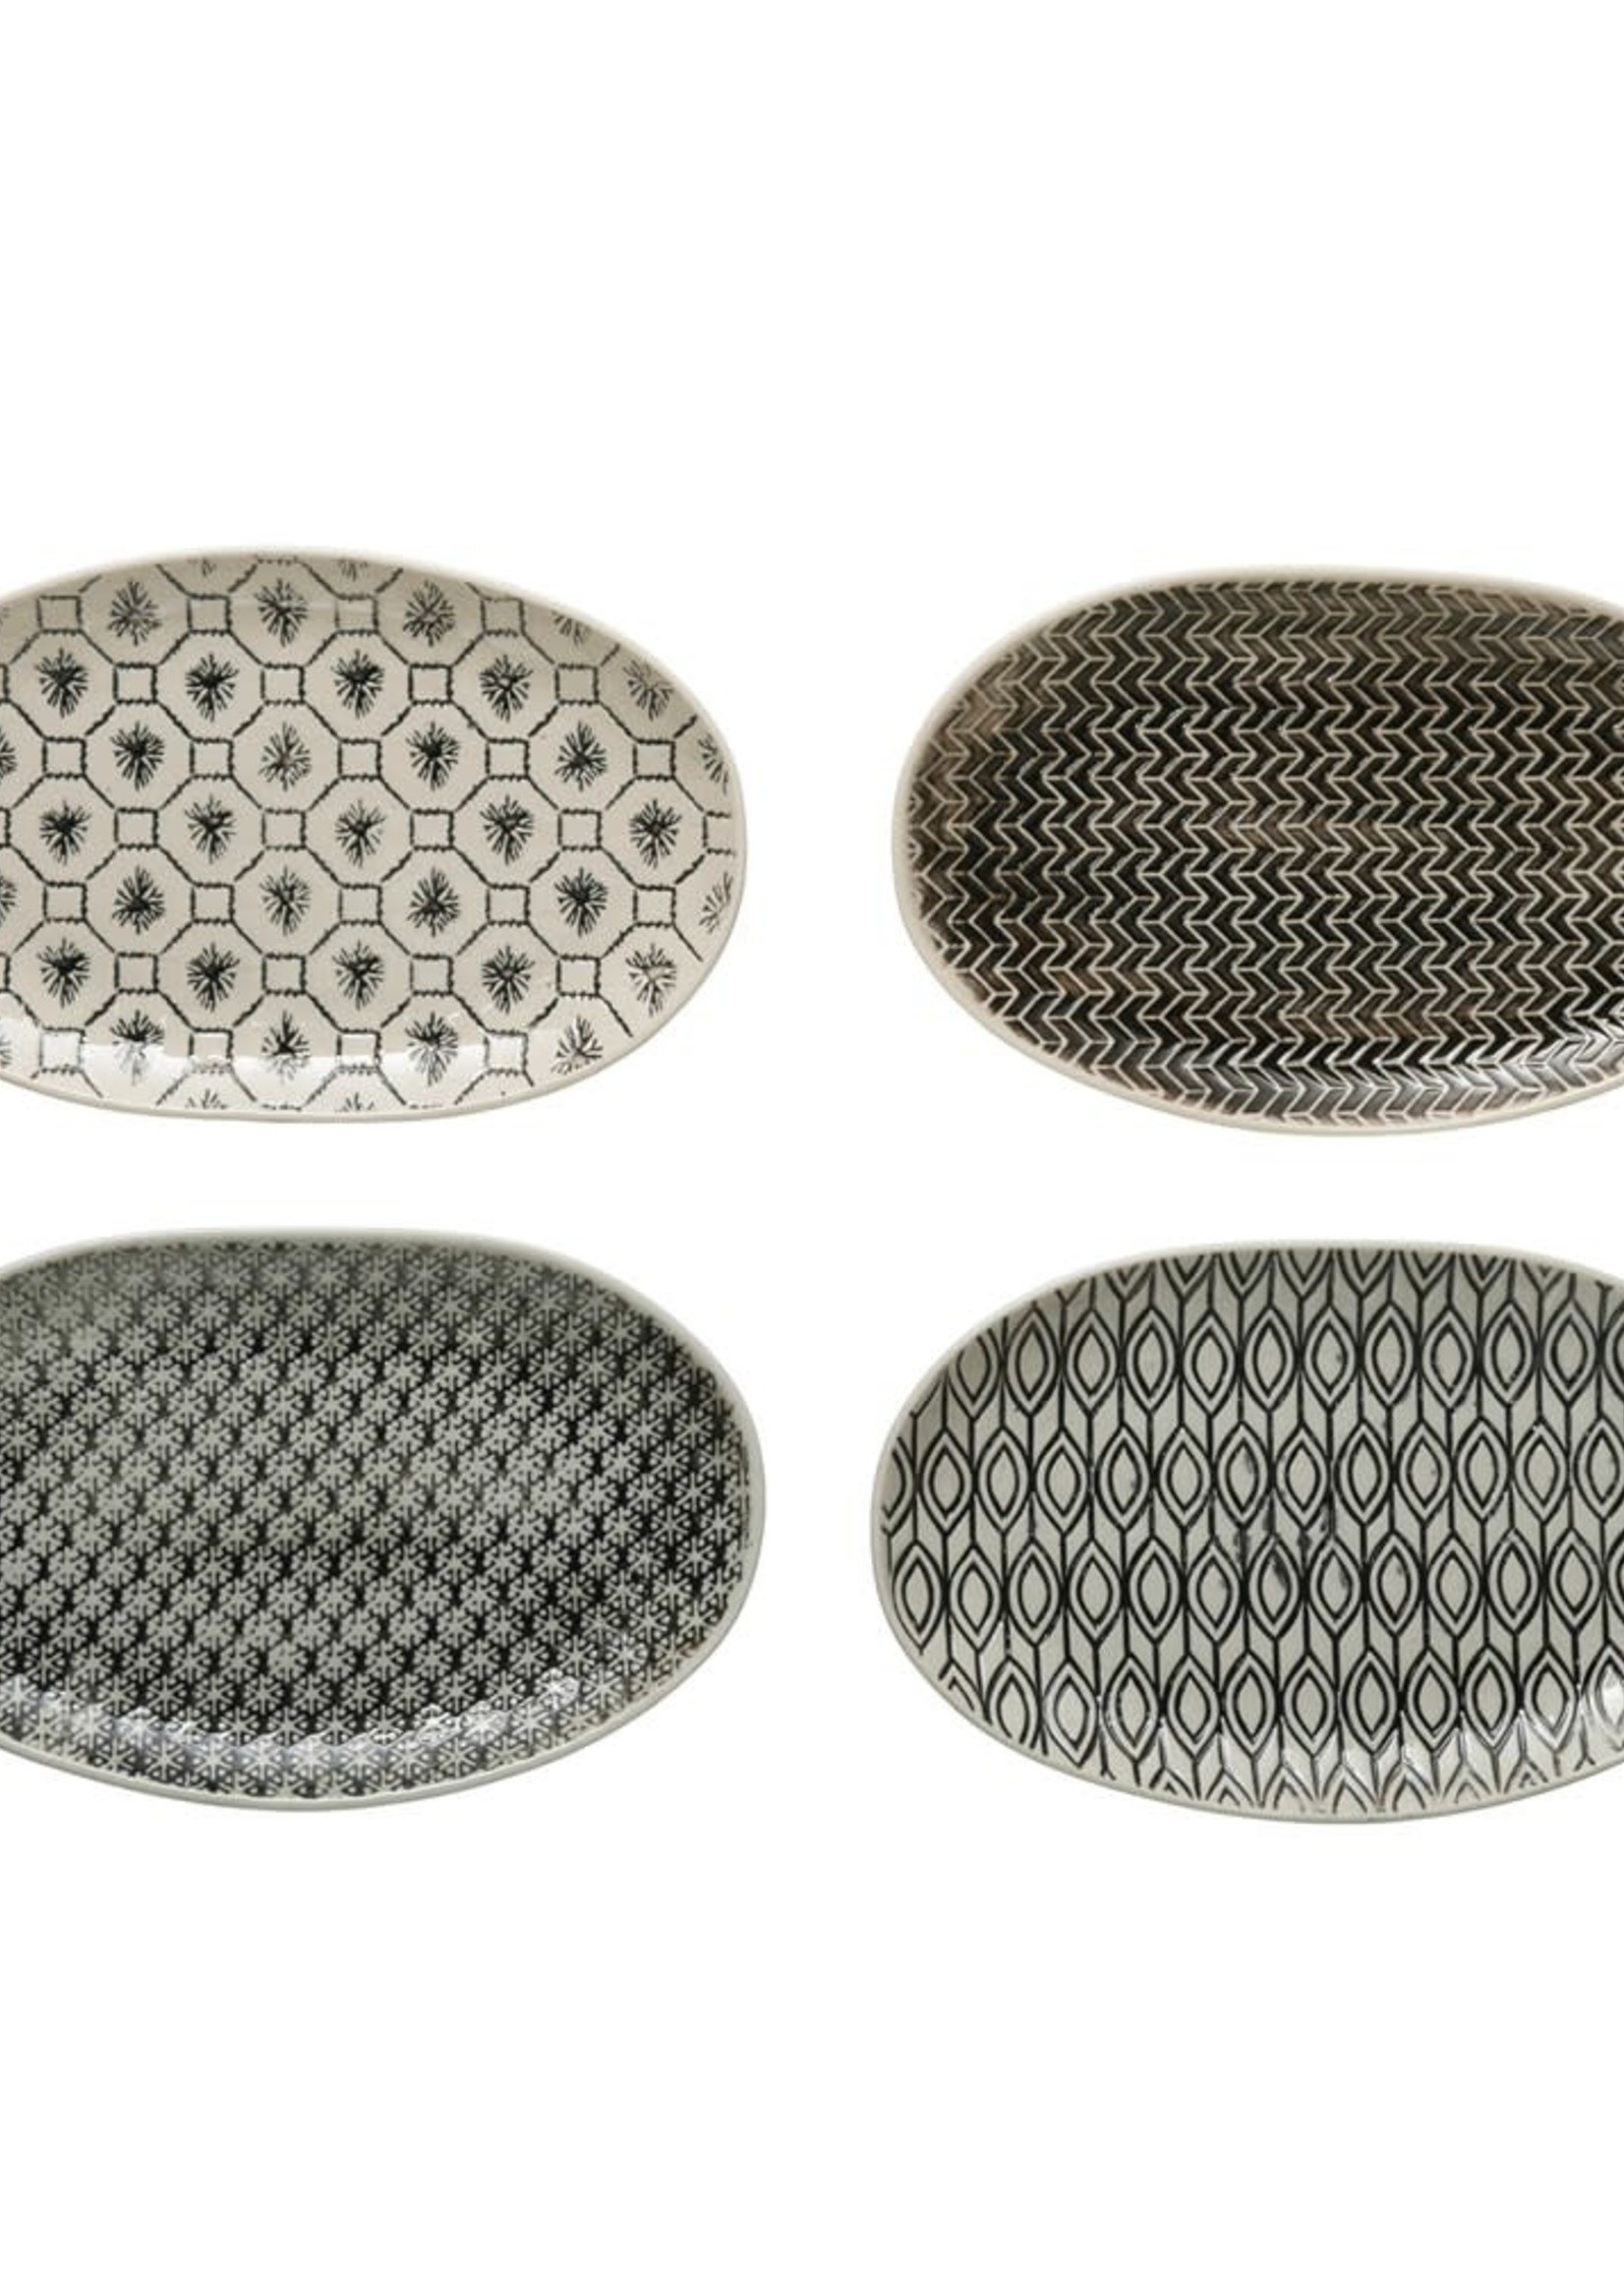 Hand-Stamped Stoneware Plate w/ Embossed Pattern, Black & Cream Color, 4 Styles